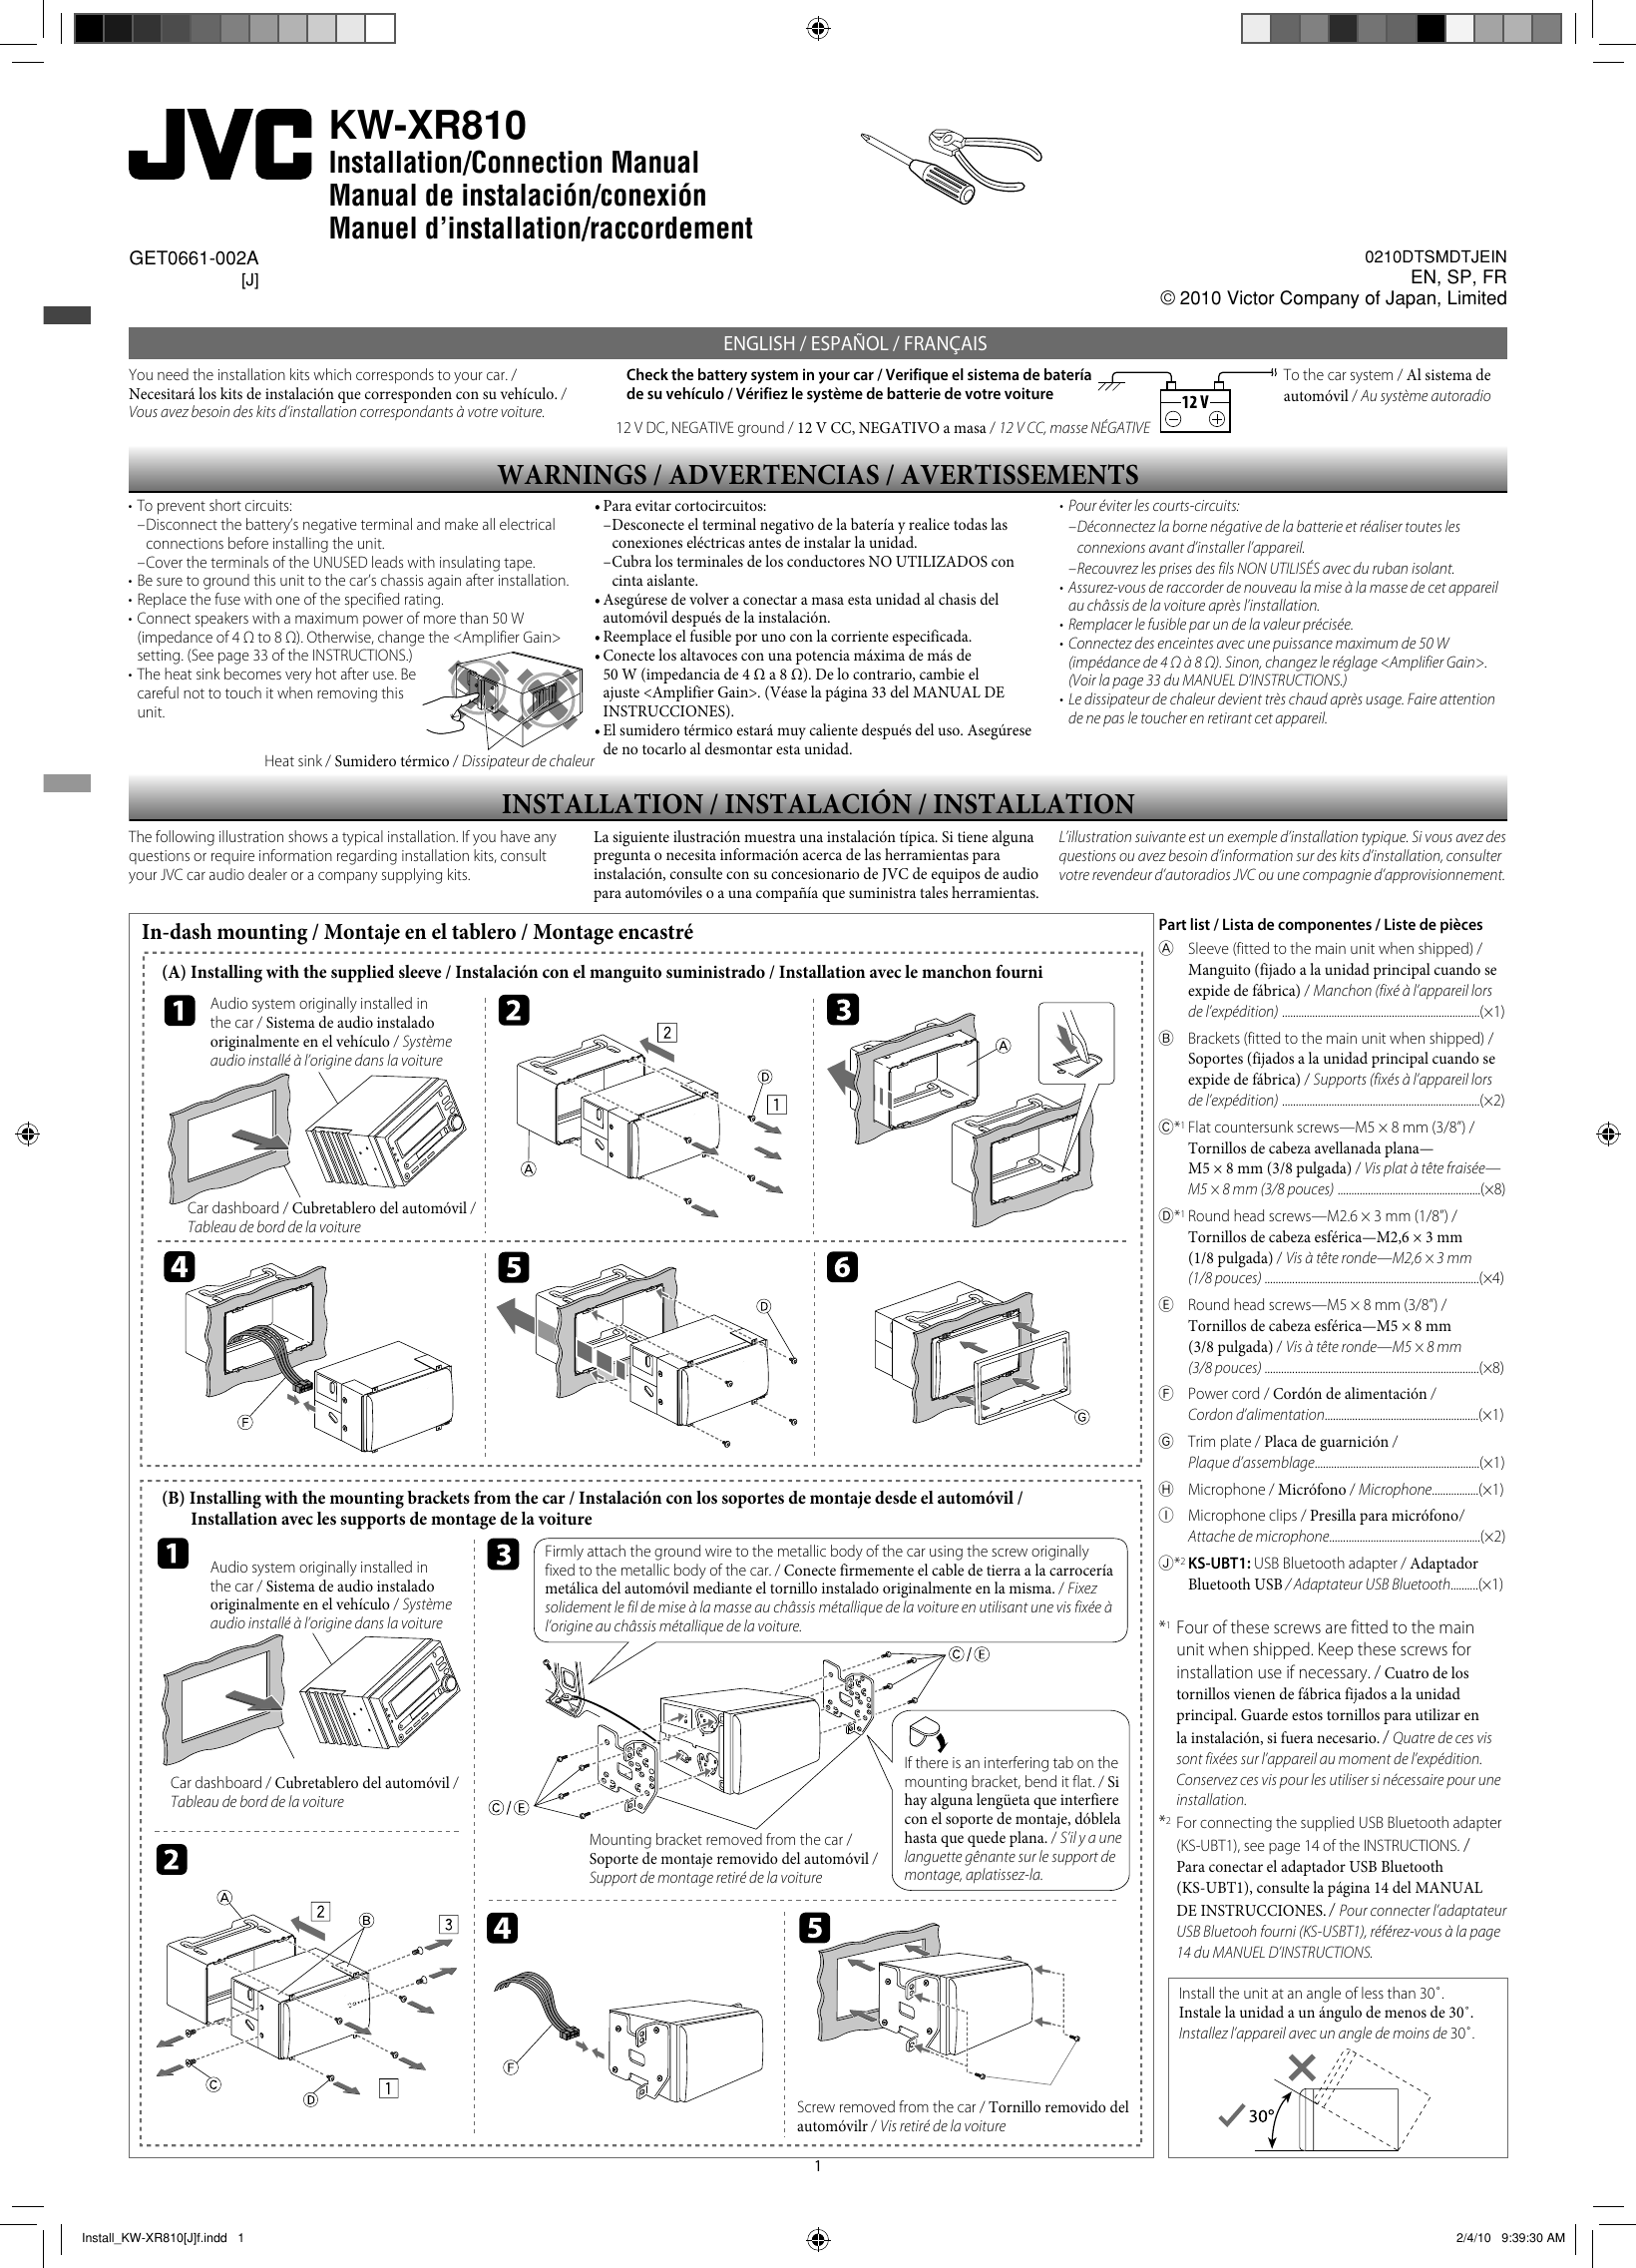 Lionel Kw Diode Installation Manual Guide